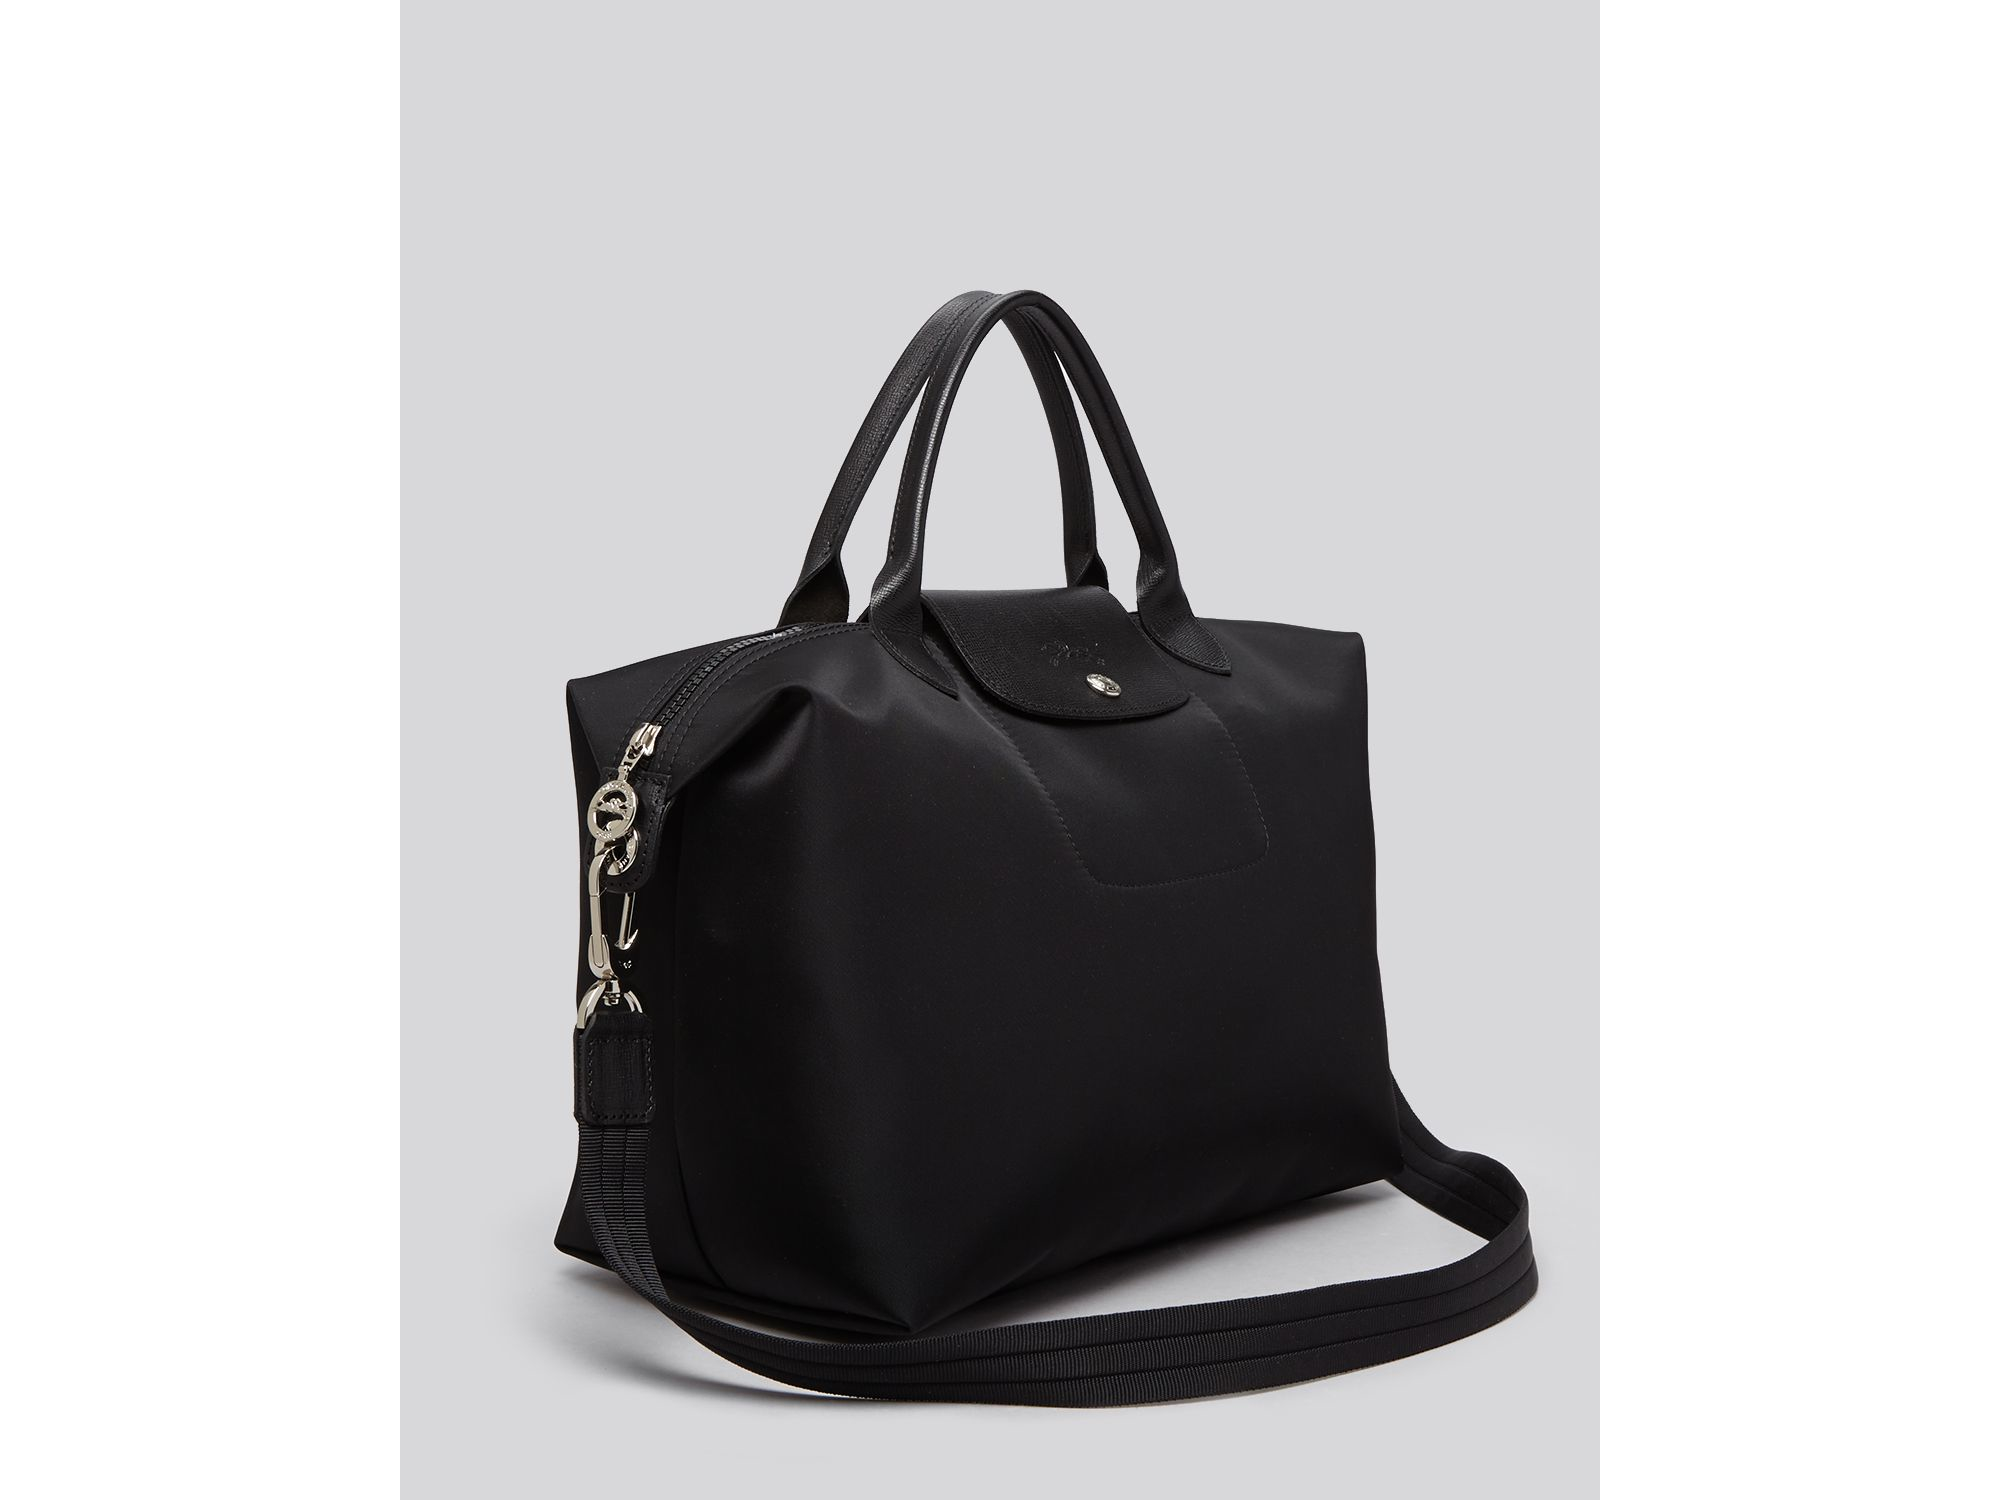 798e841d6c3 Gallery. Previously sold at: Bloomingdale's · Women's Longchamp Neo